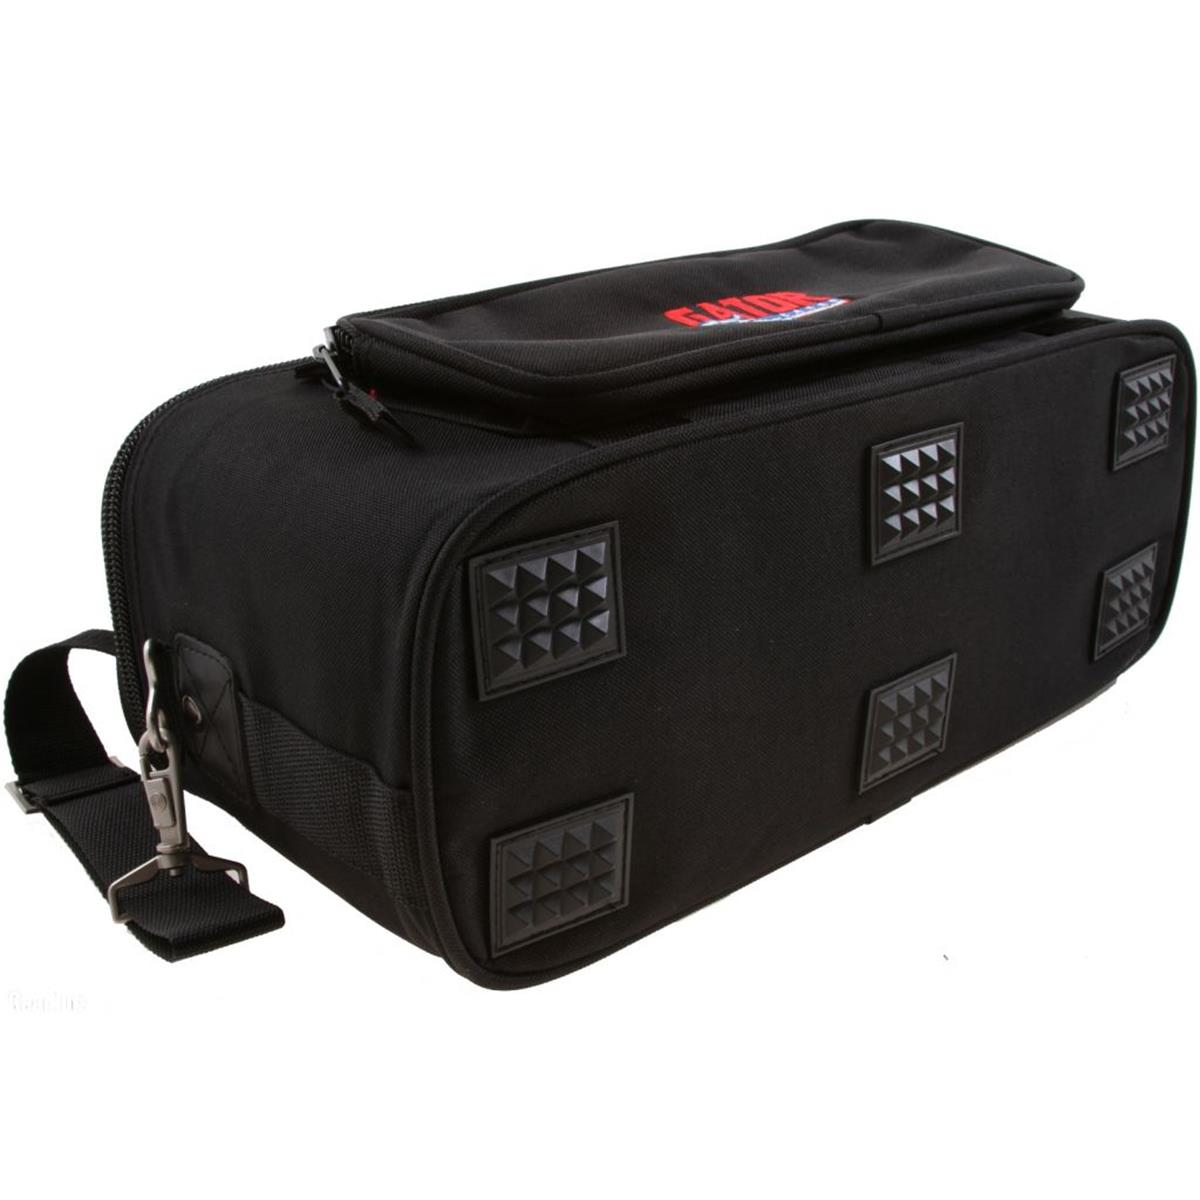 Gator GM-12B - borsa per microfoni handheld - Voce - Audio Accessori - Borse e Flight Case